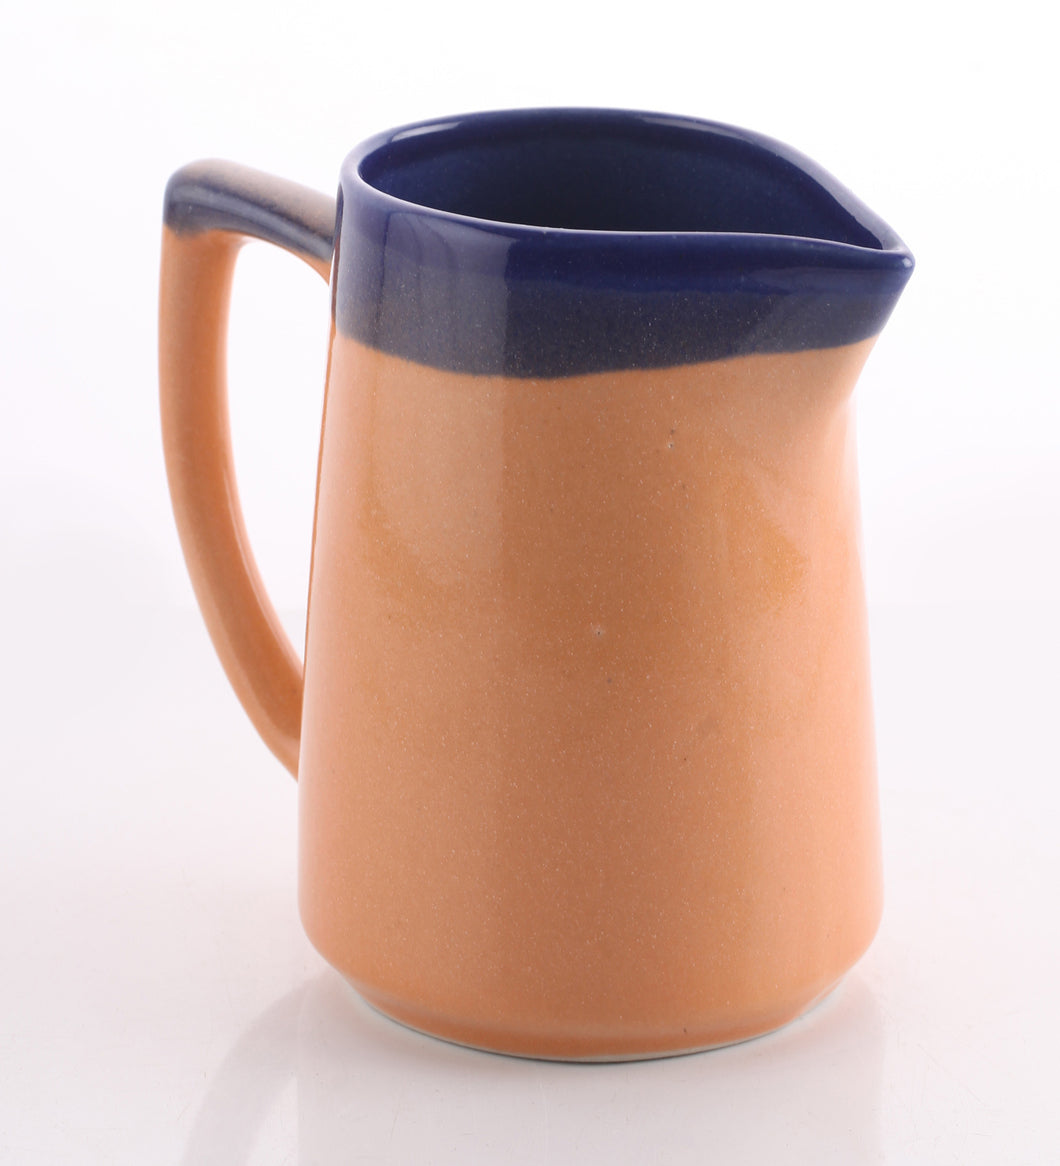 Vegan Multipurpose Pitcher / Jug - 1.2 Litre